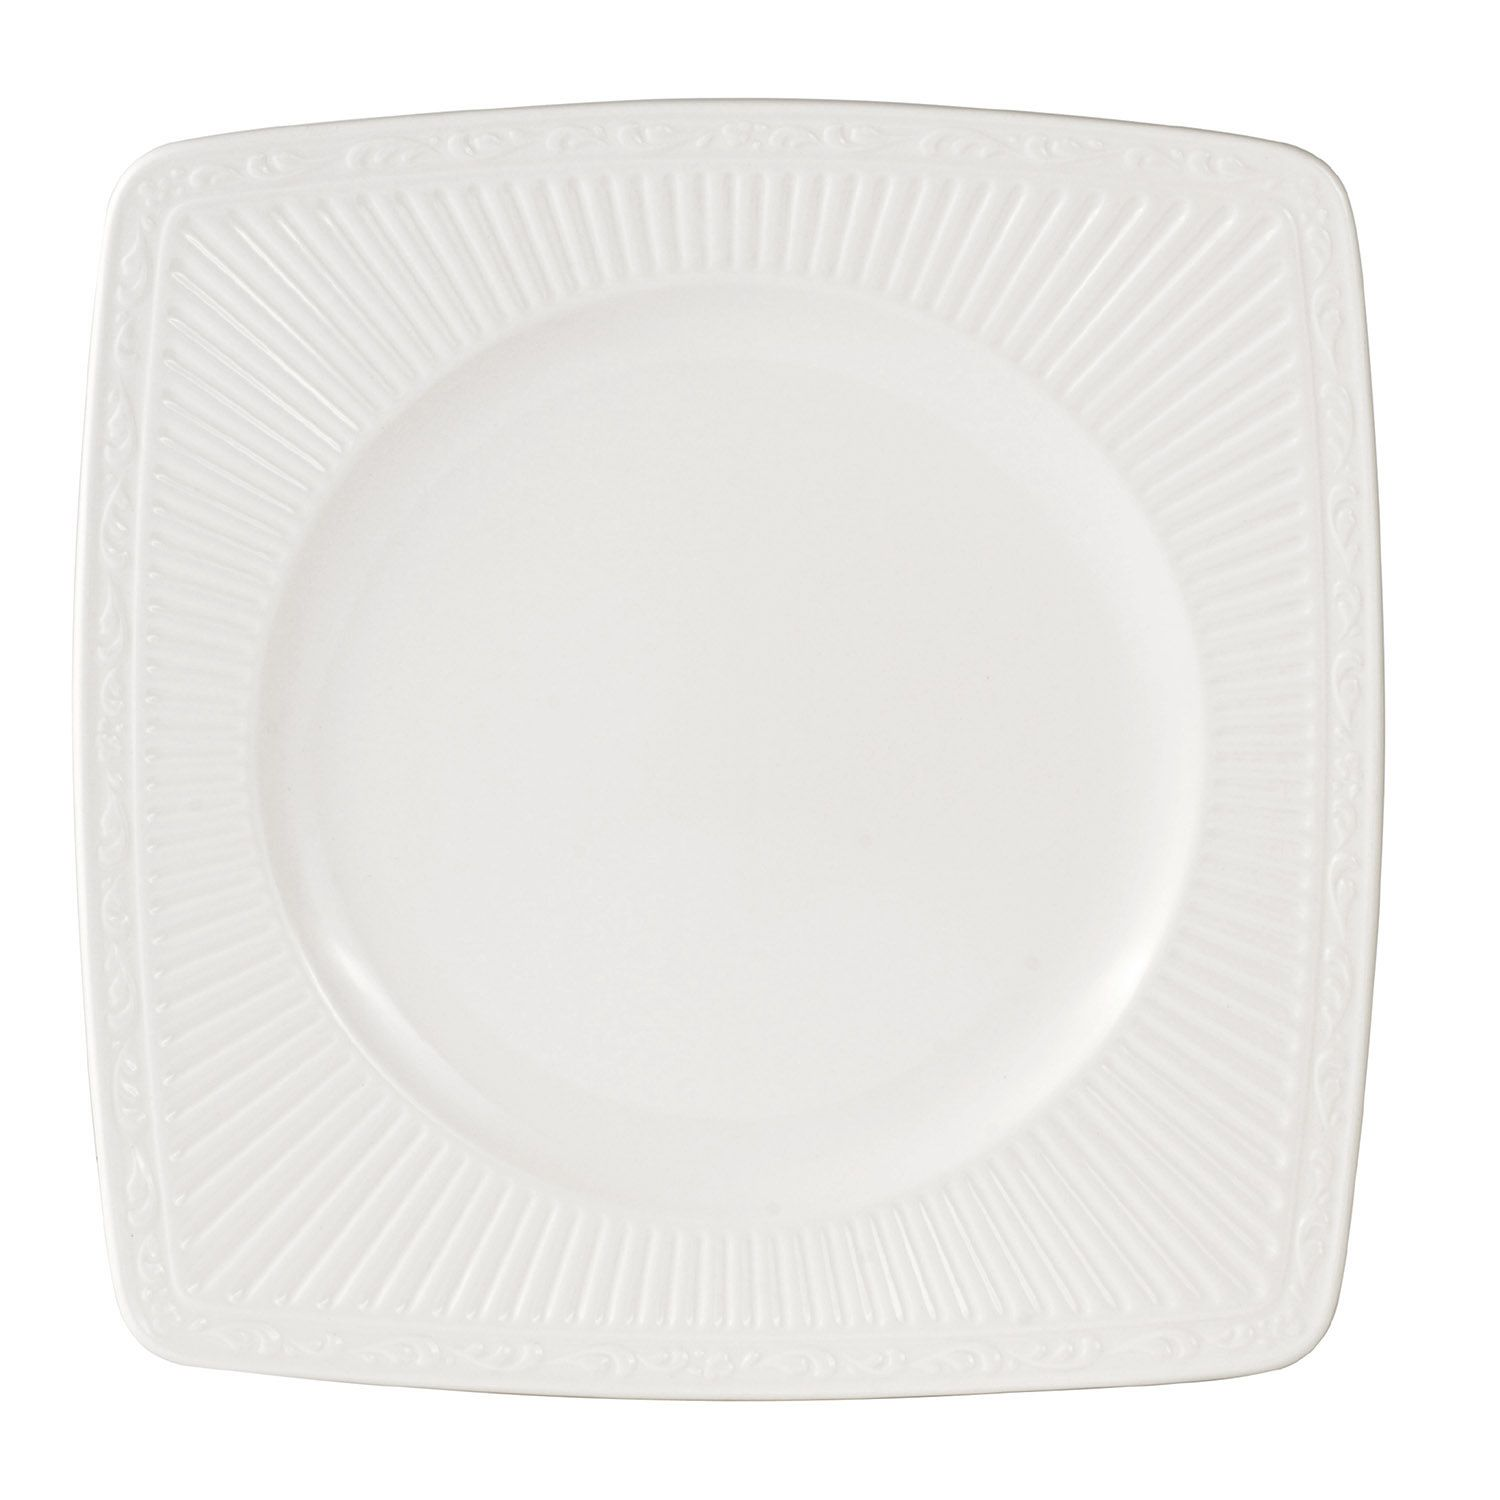 Mikasa Italian Countryside 10.74-in. Square Dinner Plate  sc 1 st  Kohlu0027s : italian countryside dinner plates - Pezcame.Com